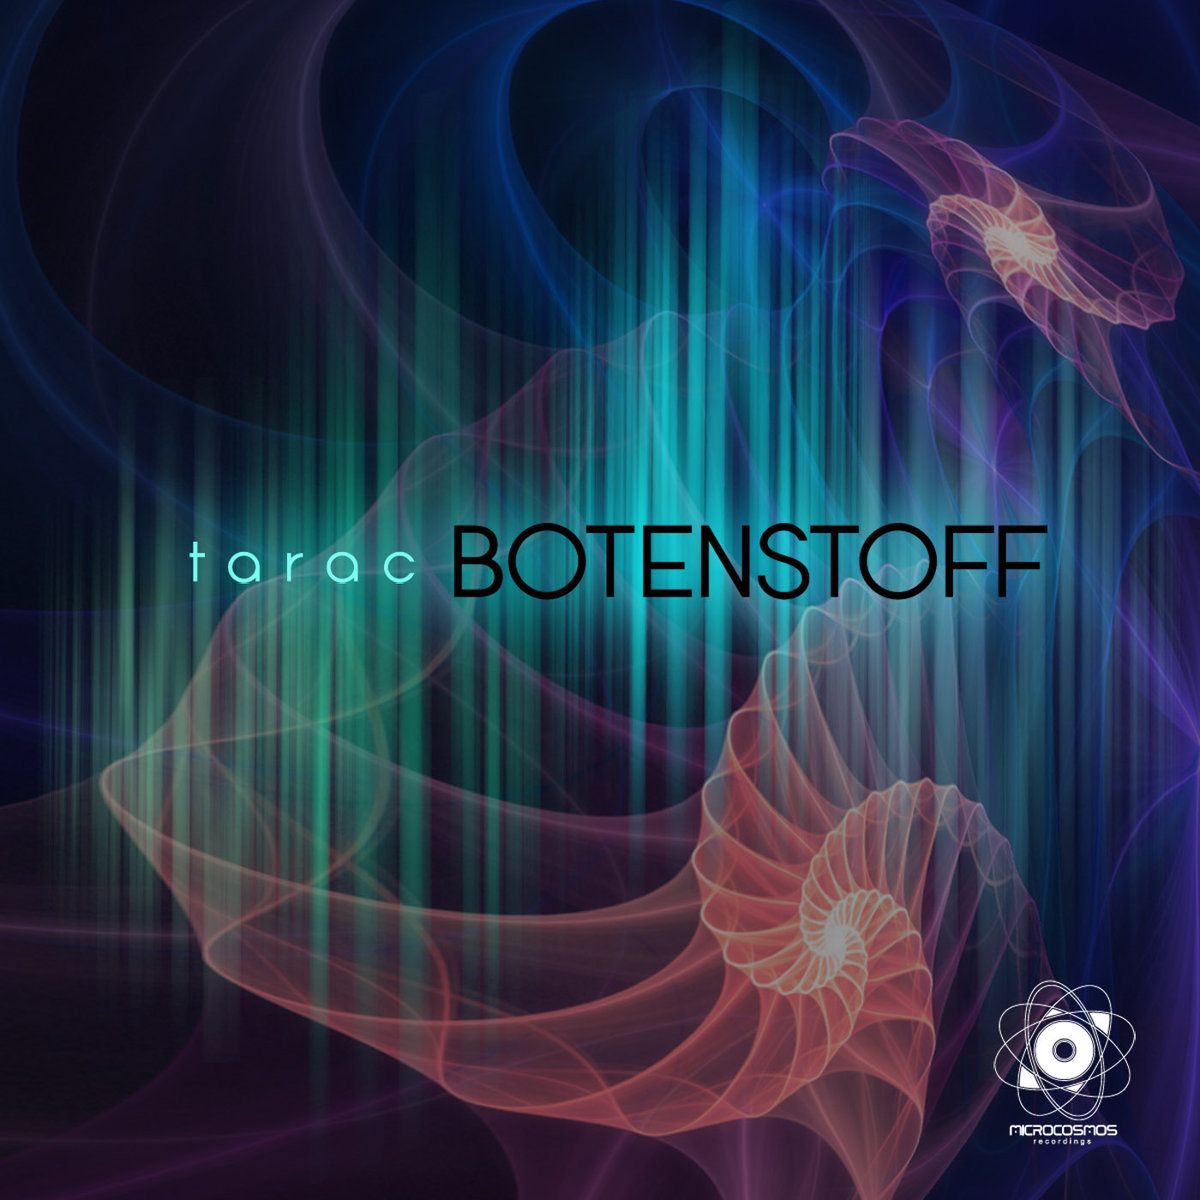 Tarac - Tinue @ 'Botenstoff' album (ambient, chill-out)